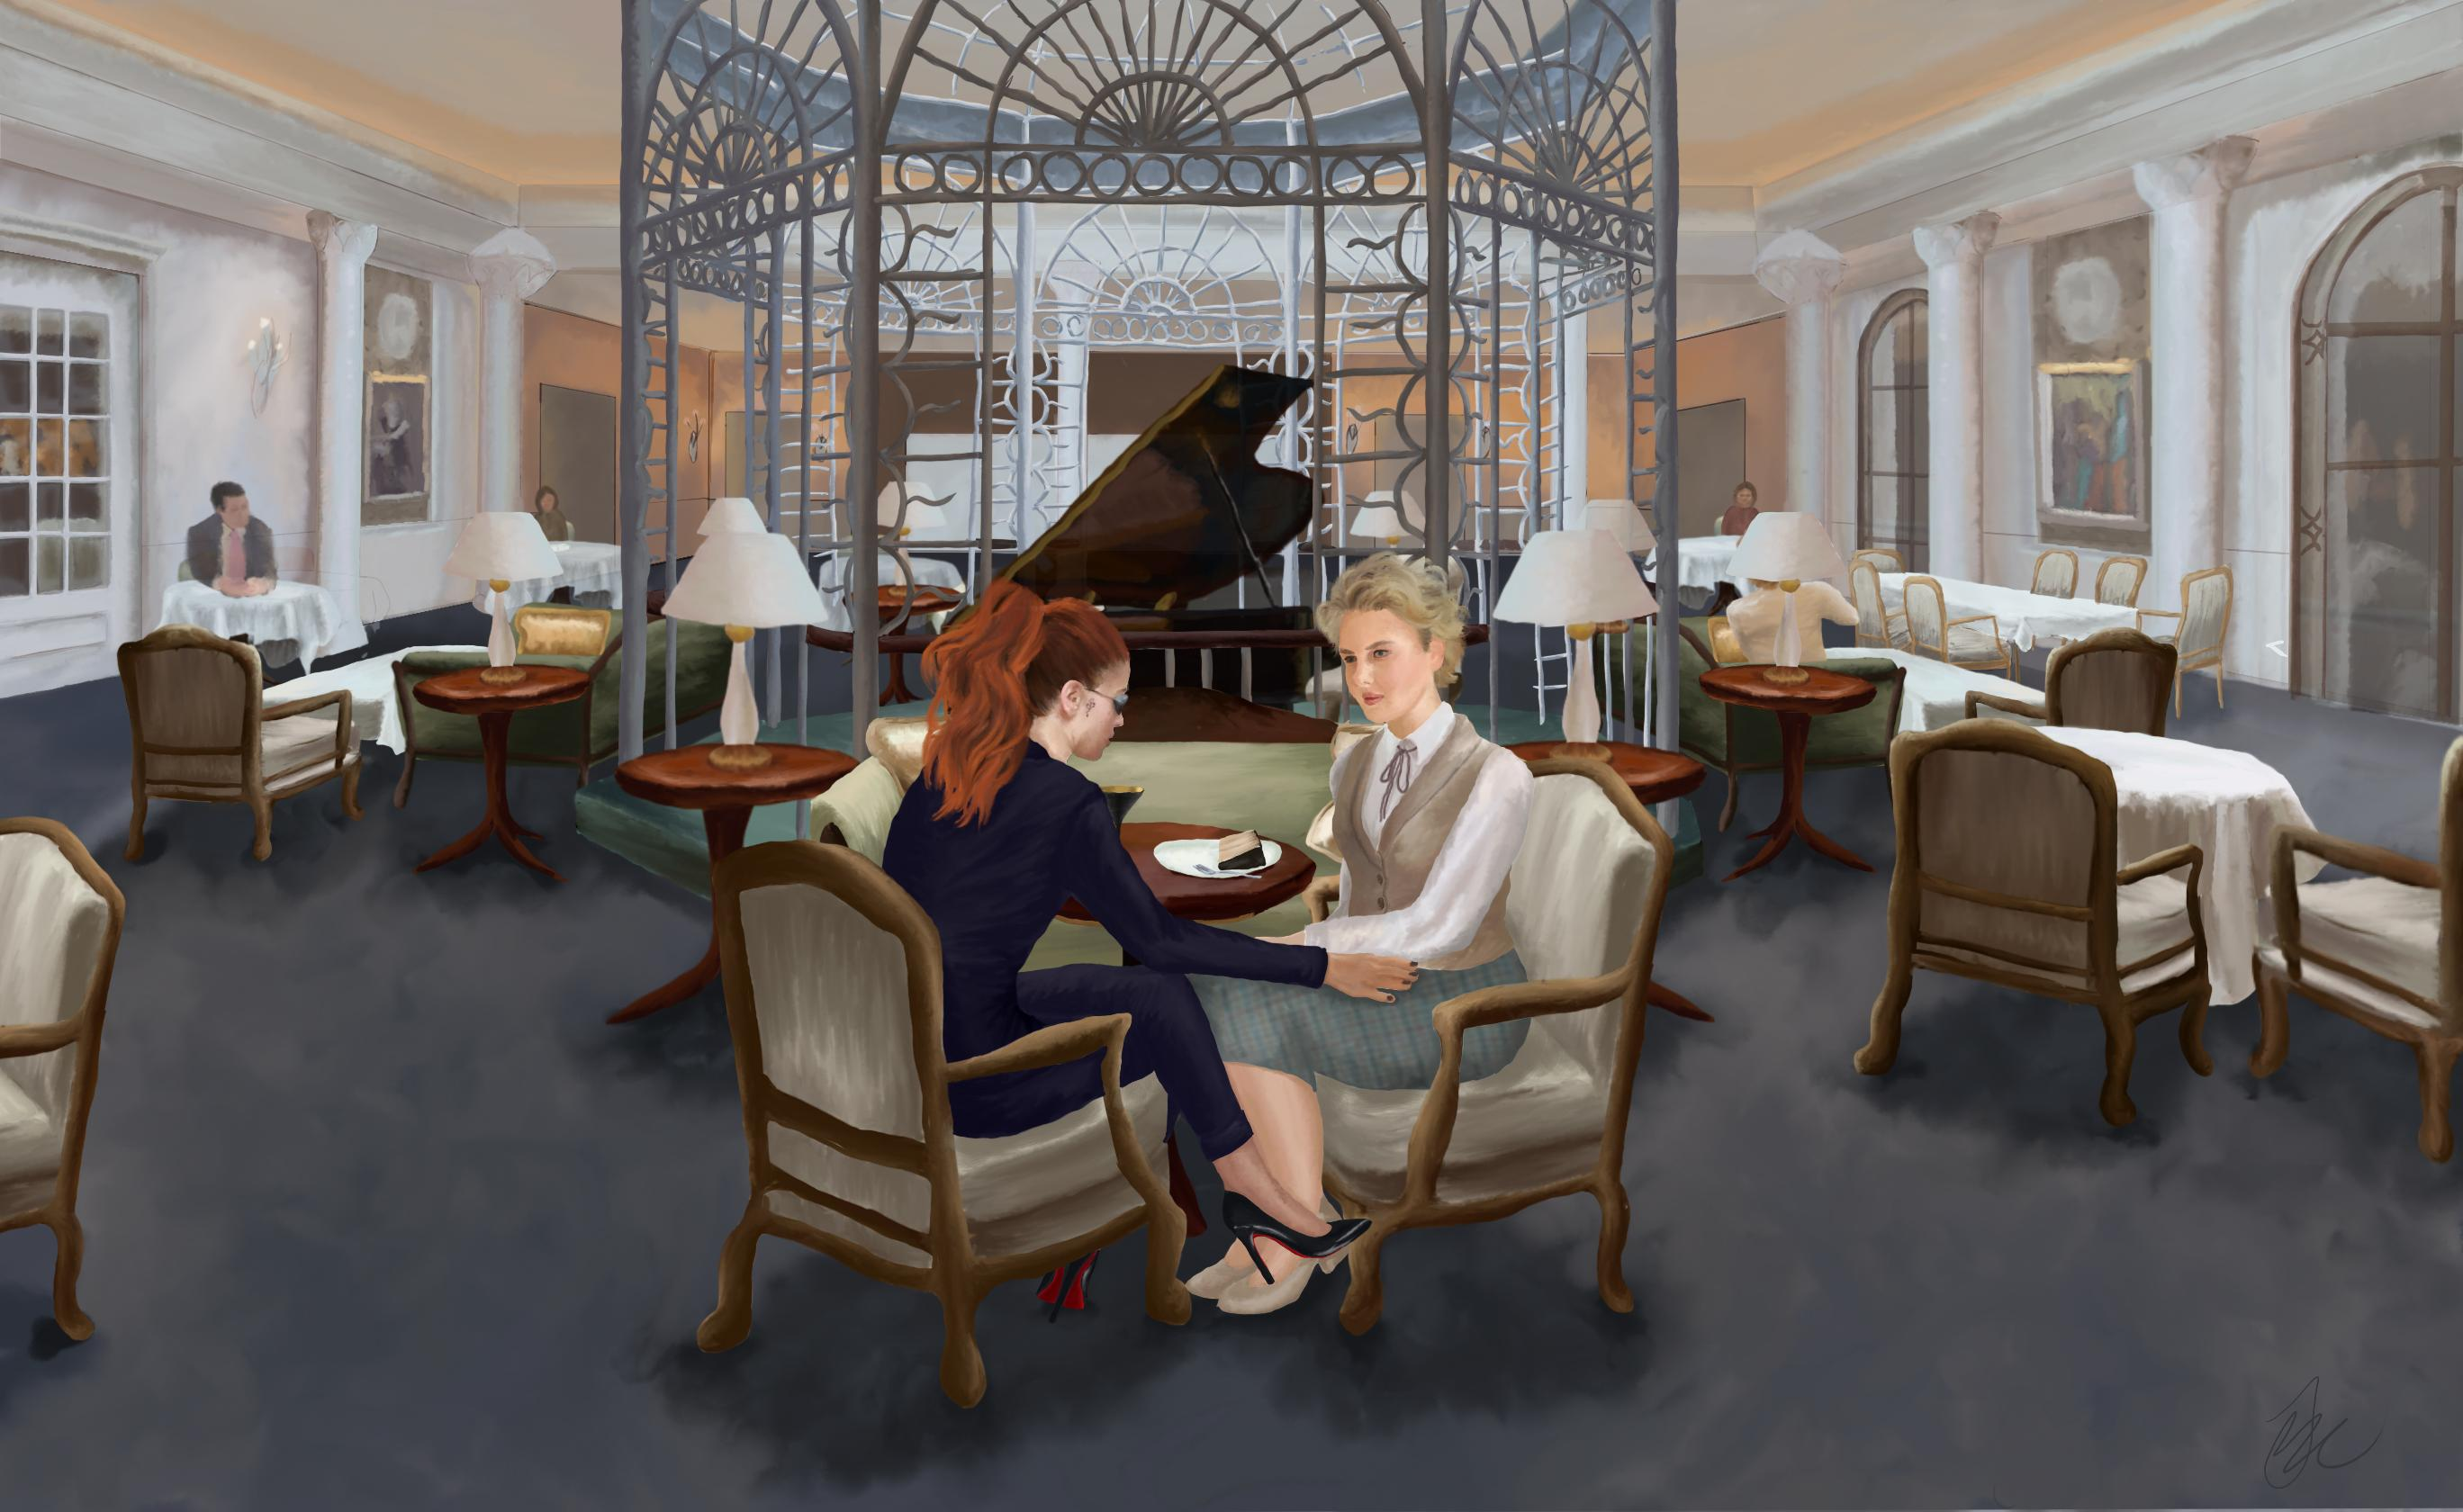 Female Crowley and Female Aziraphale at the Savoy, Crowley with her hand resting on Aziraphales thigh - image done by Robynthemagpie - click for larger image